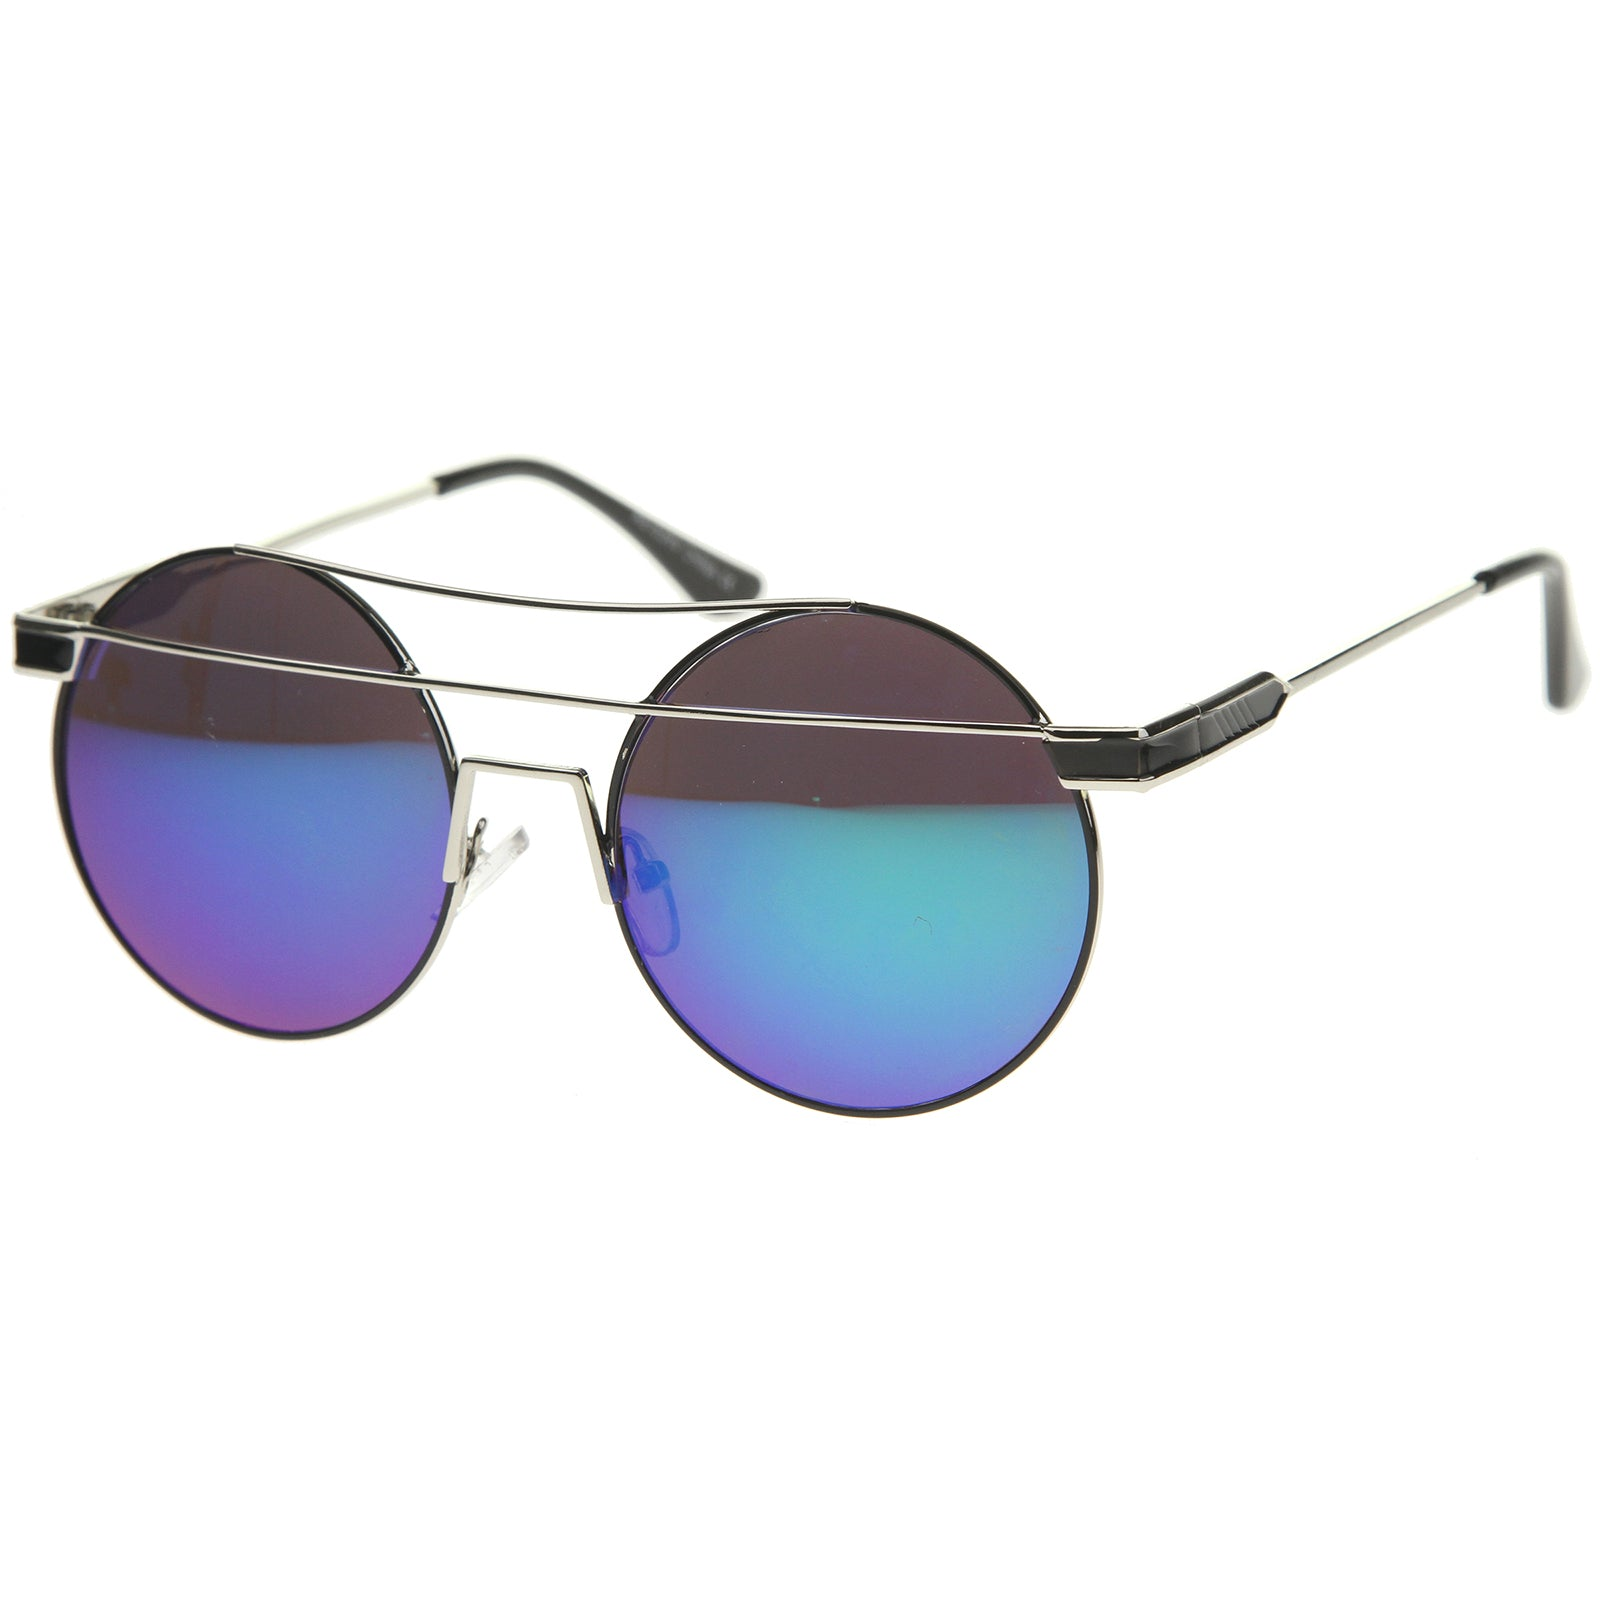 Modern Metal Frame Double Bridge Colored Mirror Lens Round Sunglasses 59mm - sunglass.la - 14